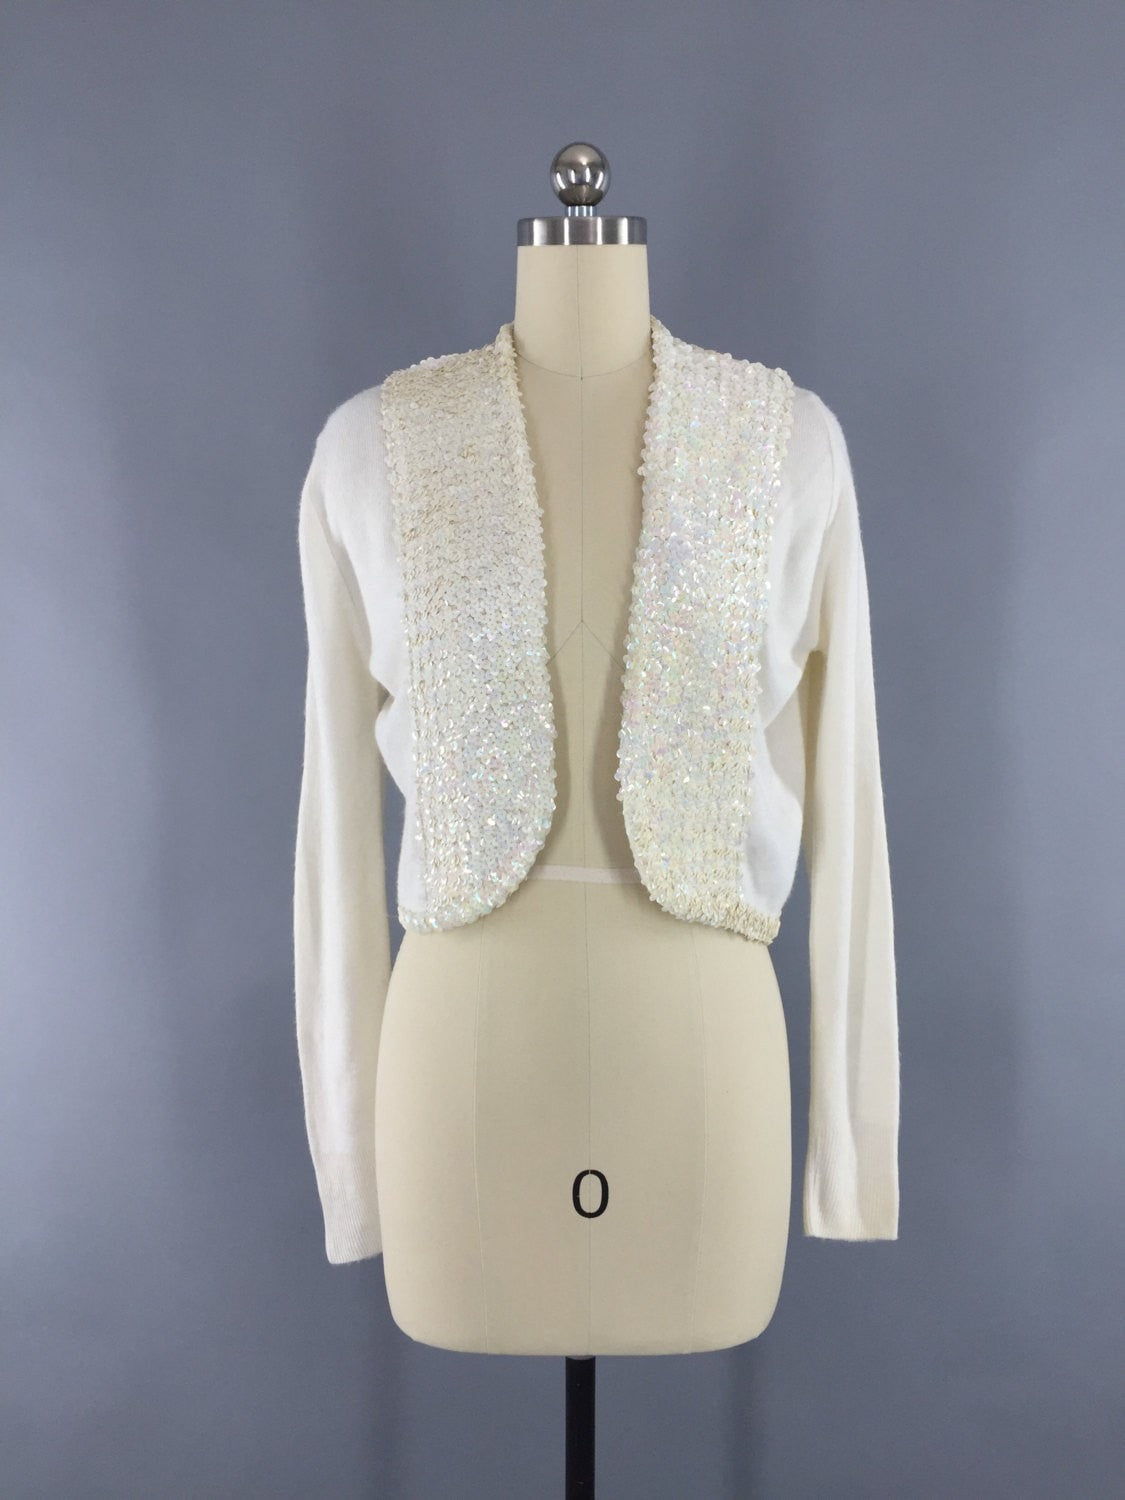 Vintage 1950s White Sequined Cropped Cardigan Sweater Tops ThisBlueBird